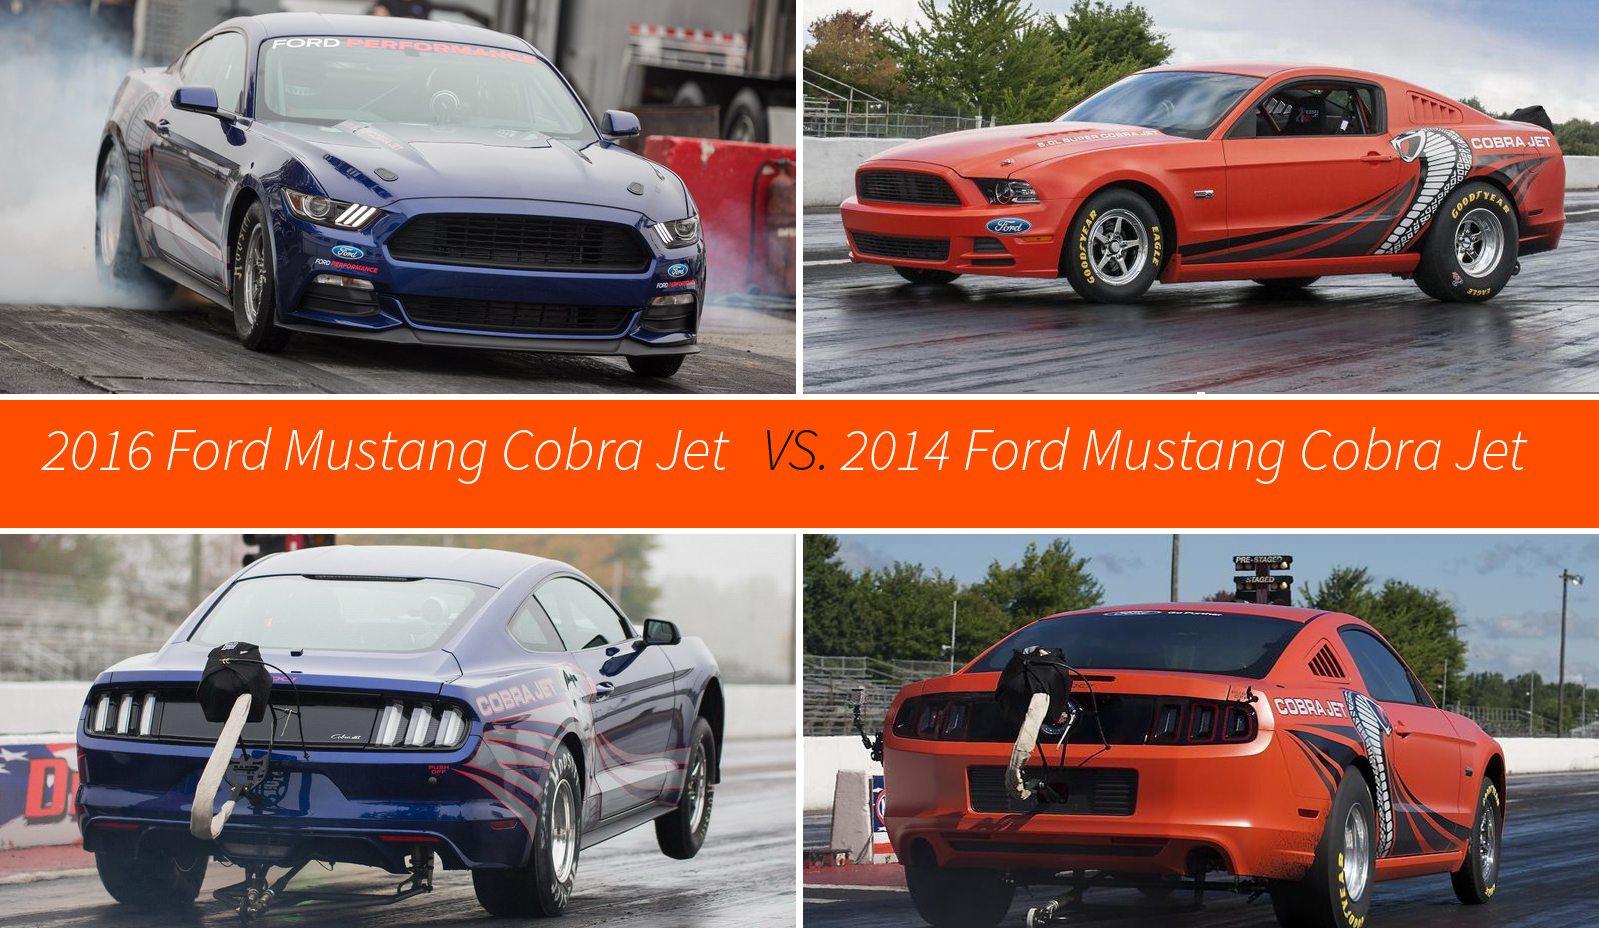 2016 Ford Mustang Cobra Jet Review